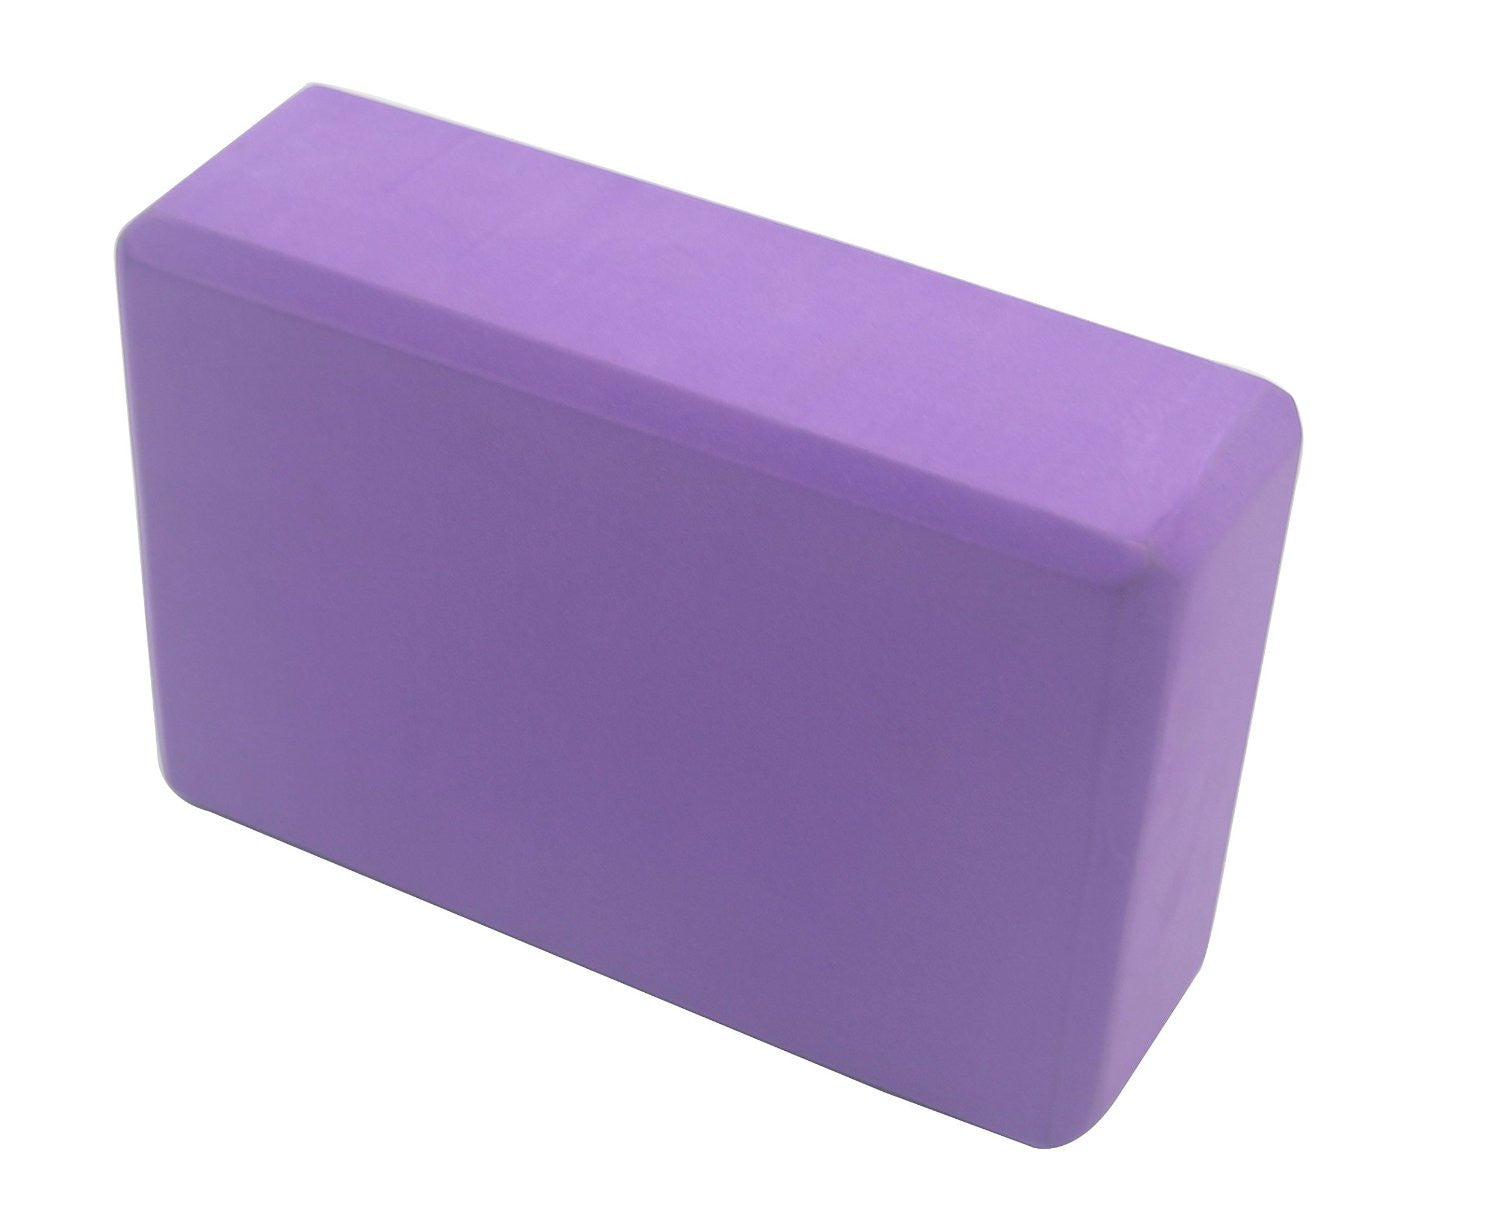 Dense Foam Yoga Block (set of 2)